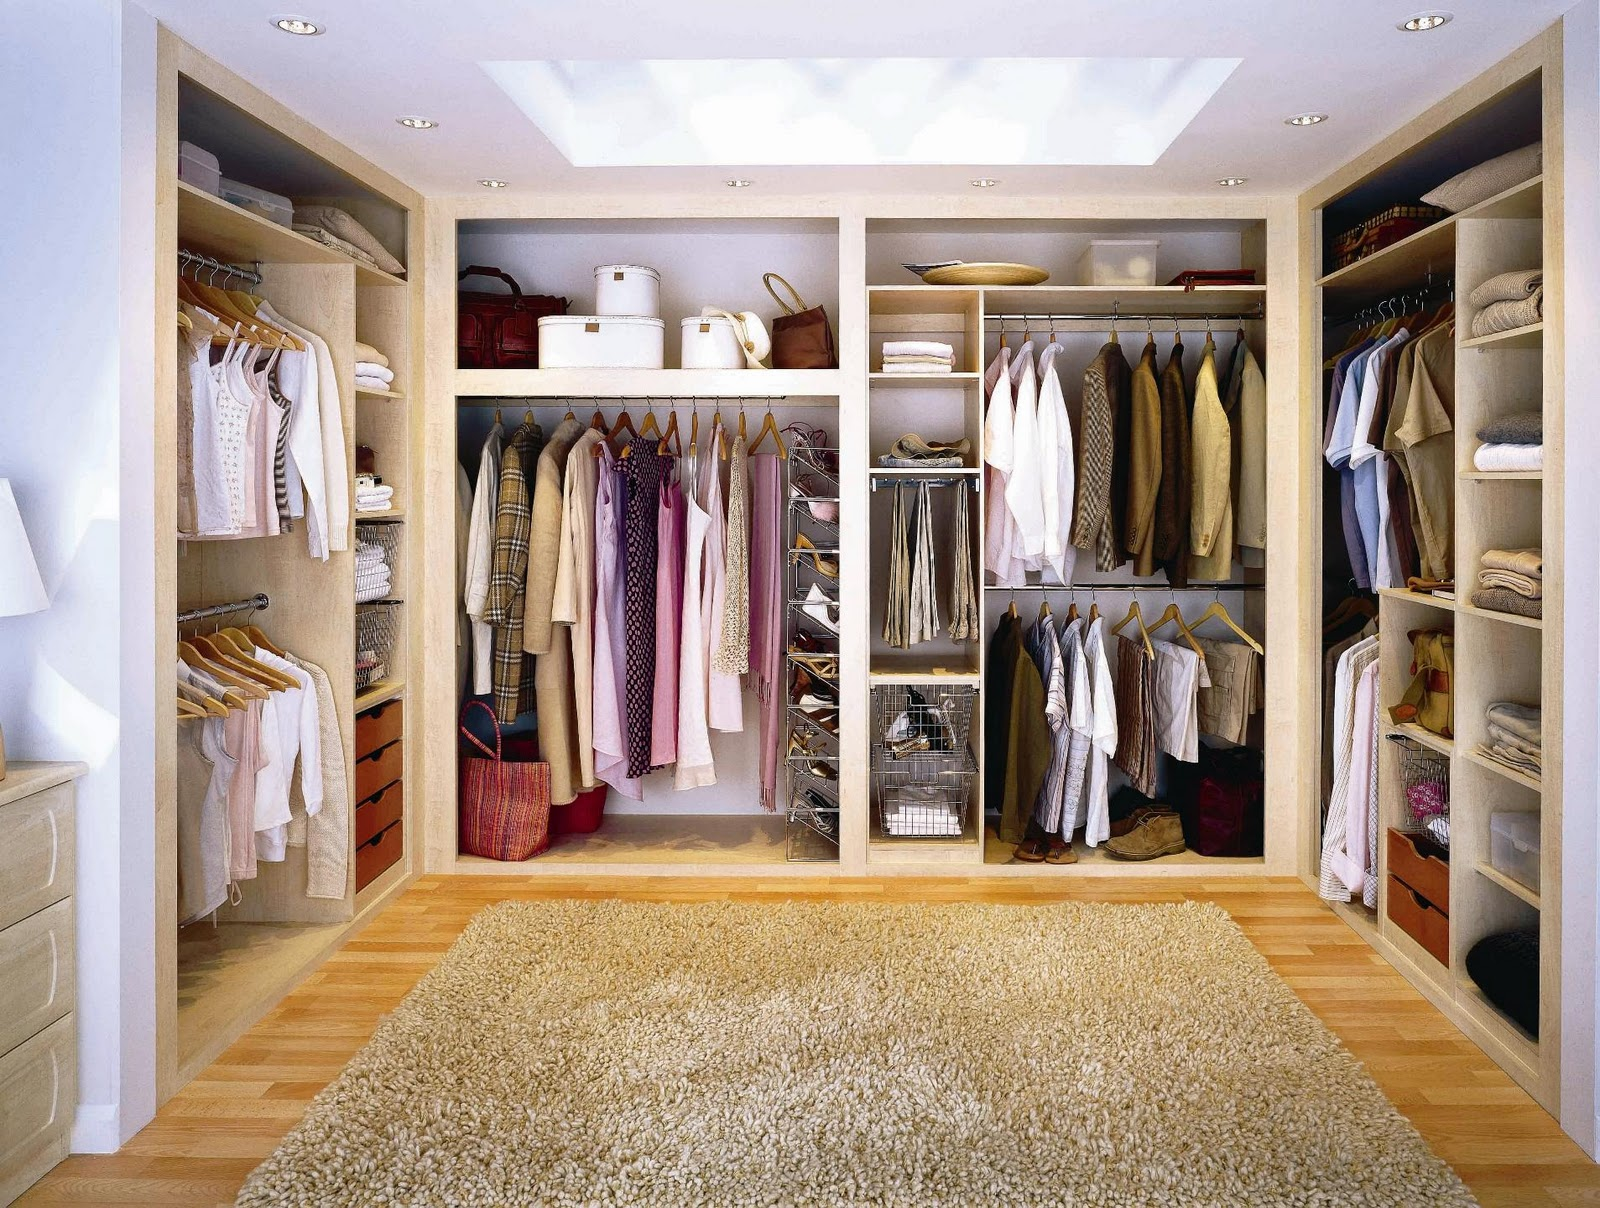 Walk in closet in all its glory interior design paradise - Pictures of walk in closets ...